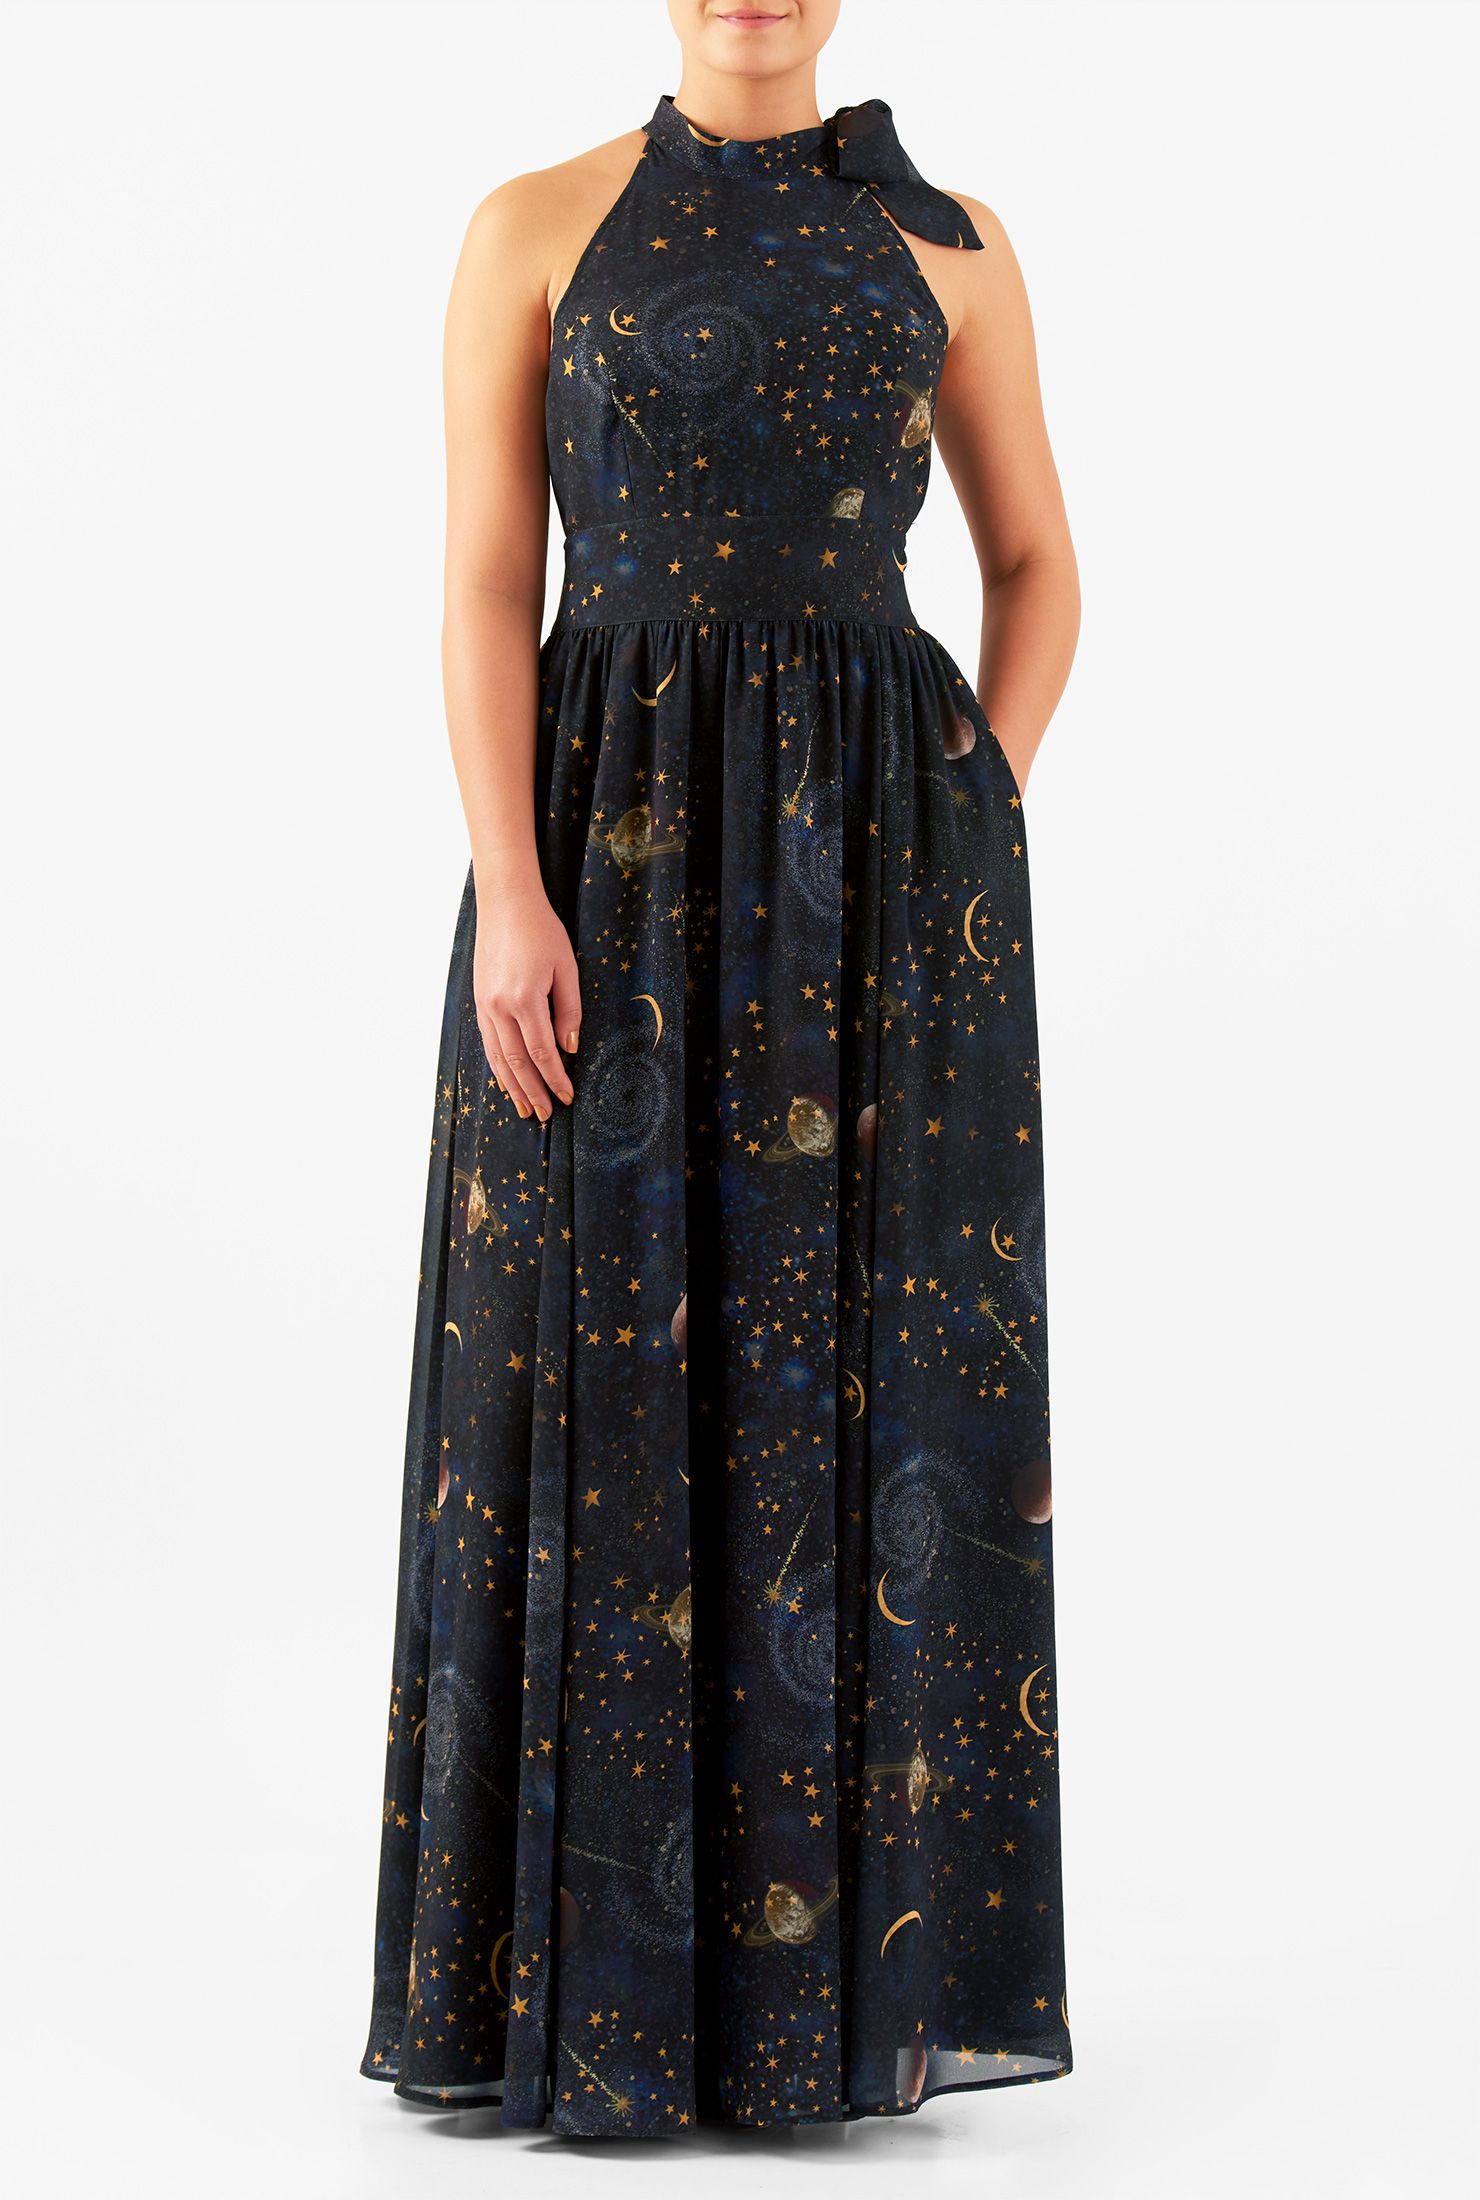 d4b7c36aaca Constellation Print Georgette Maxi - would get it knee length ...